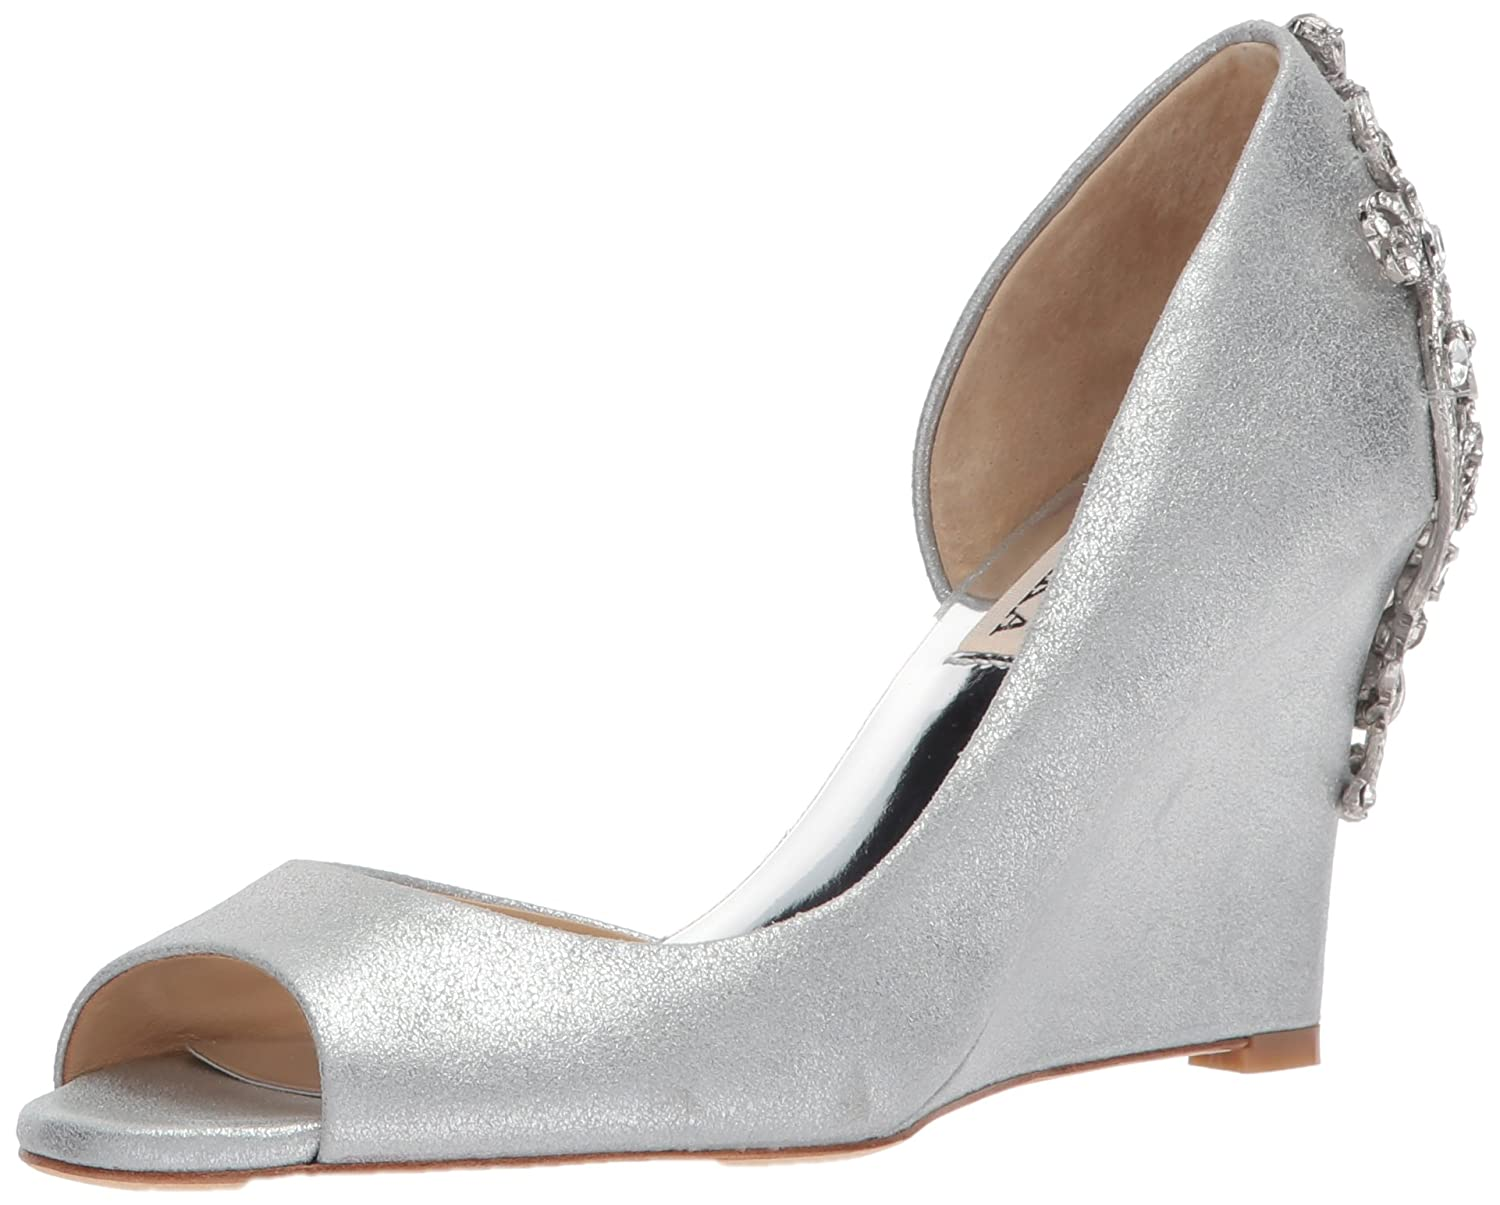 Badgley Mischka Women's Meagan II Pump B07351LTQH 8.5 B(M) US|Silver